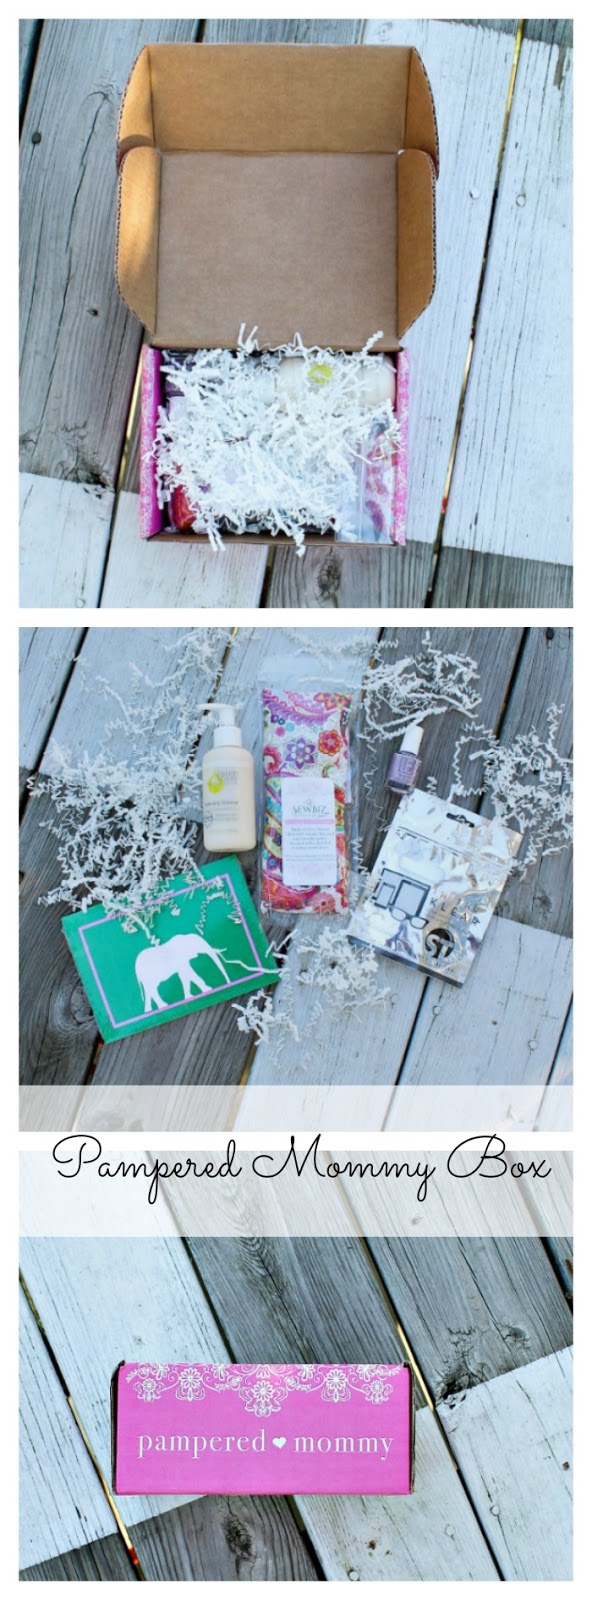 Pampered Mommy Box